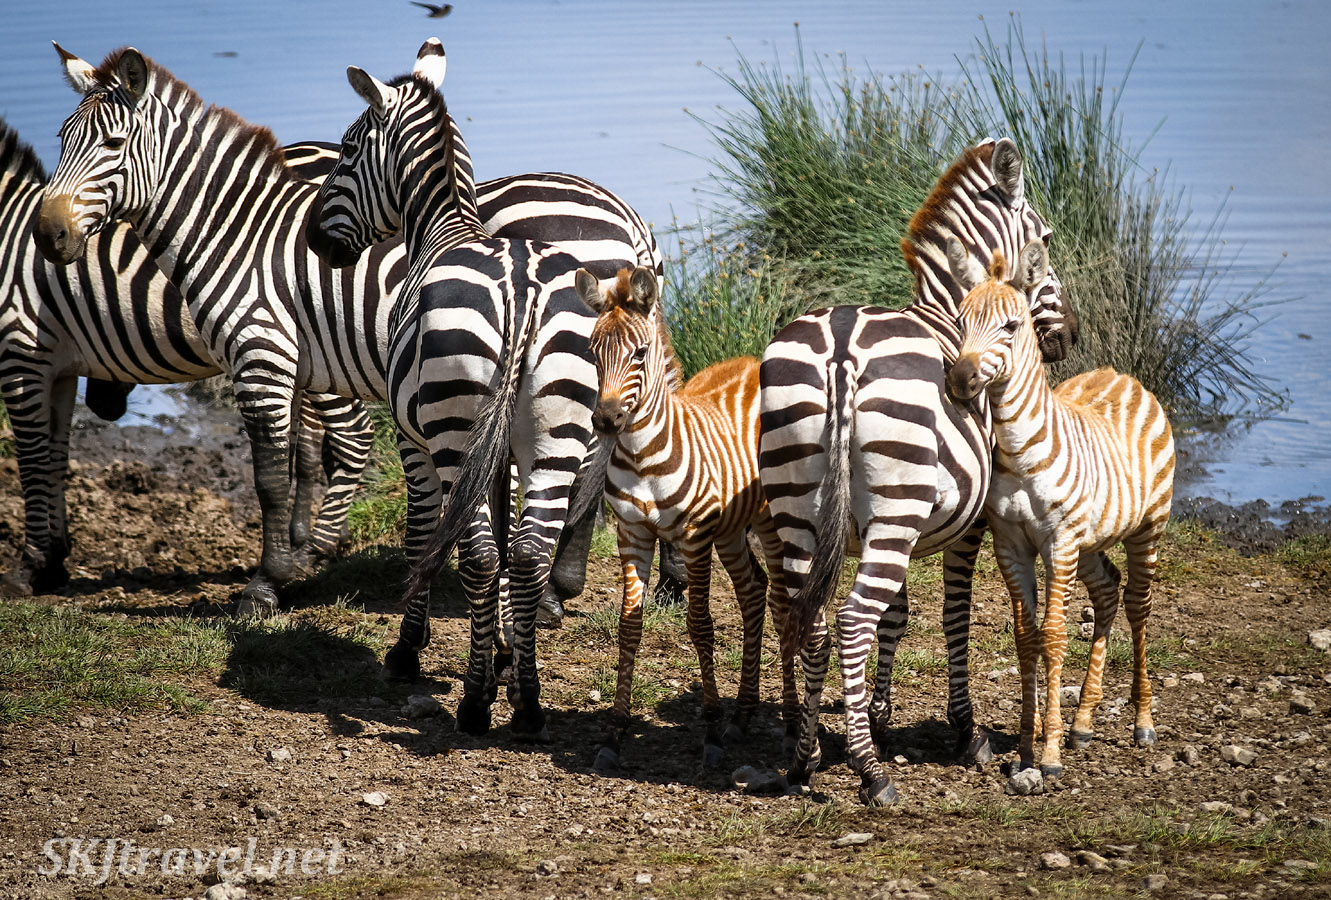 Young zebras and their moms at a water crossing, Ndutu, Tanzania.